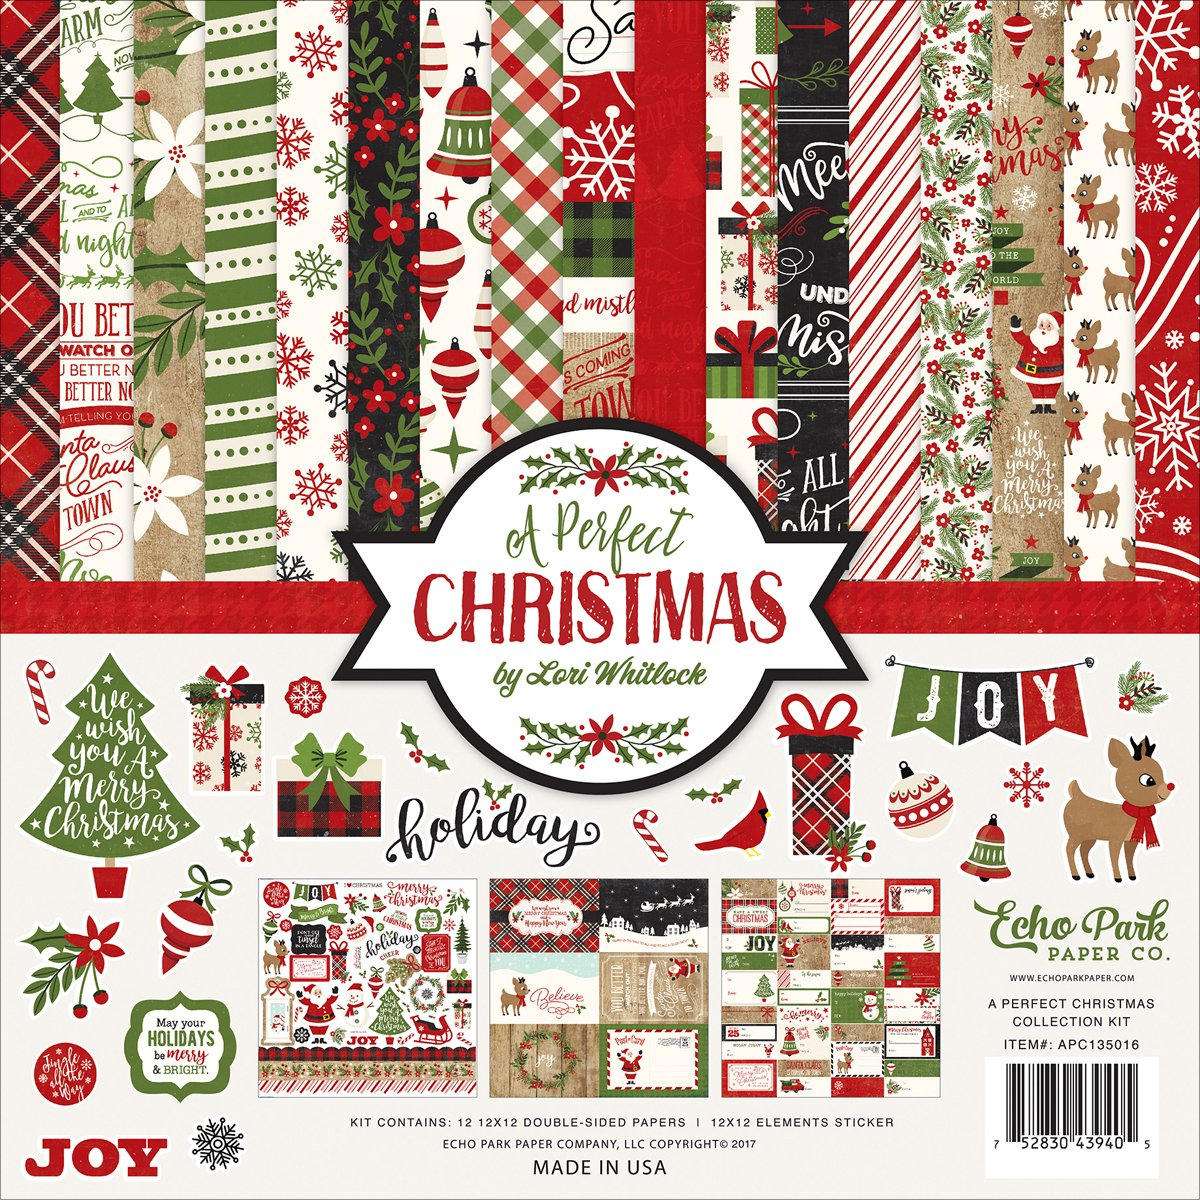 Echo Park Paper Company a Perfect Christmas Collection Kit